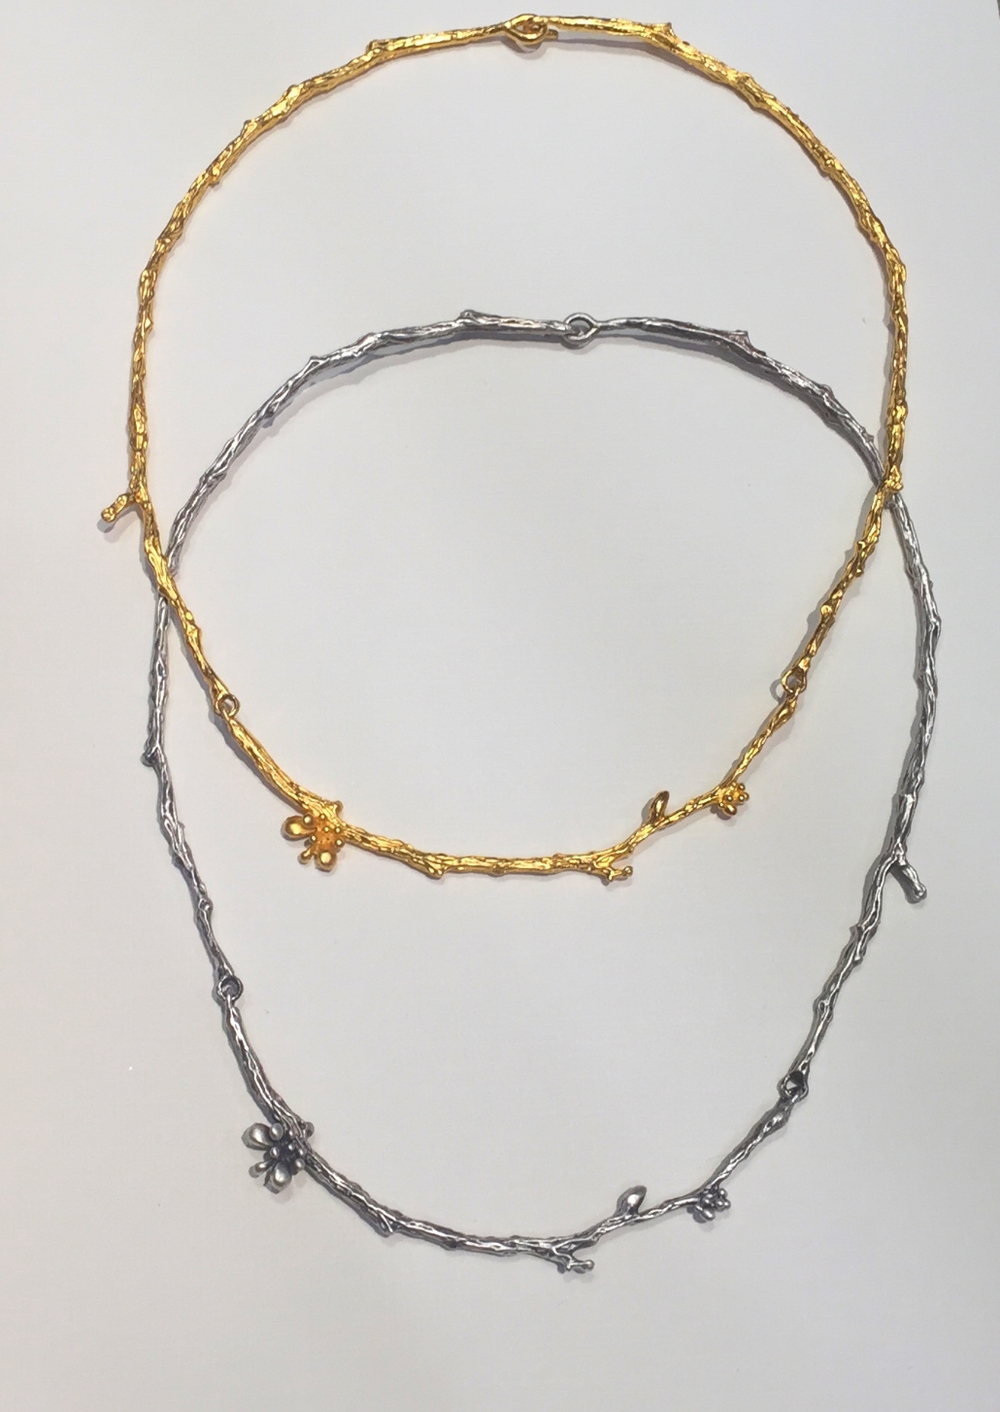 Branchy neck goodness by Ruta Reifen of Brooklyn. Yellow and white gold vermeil.